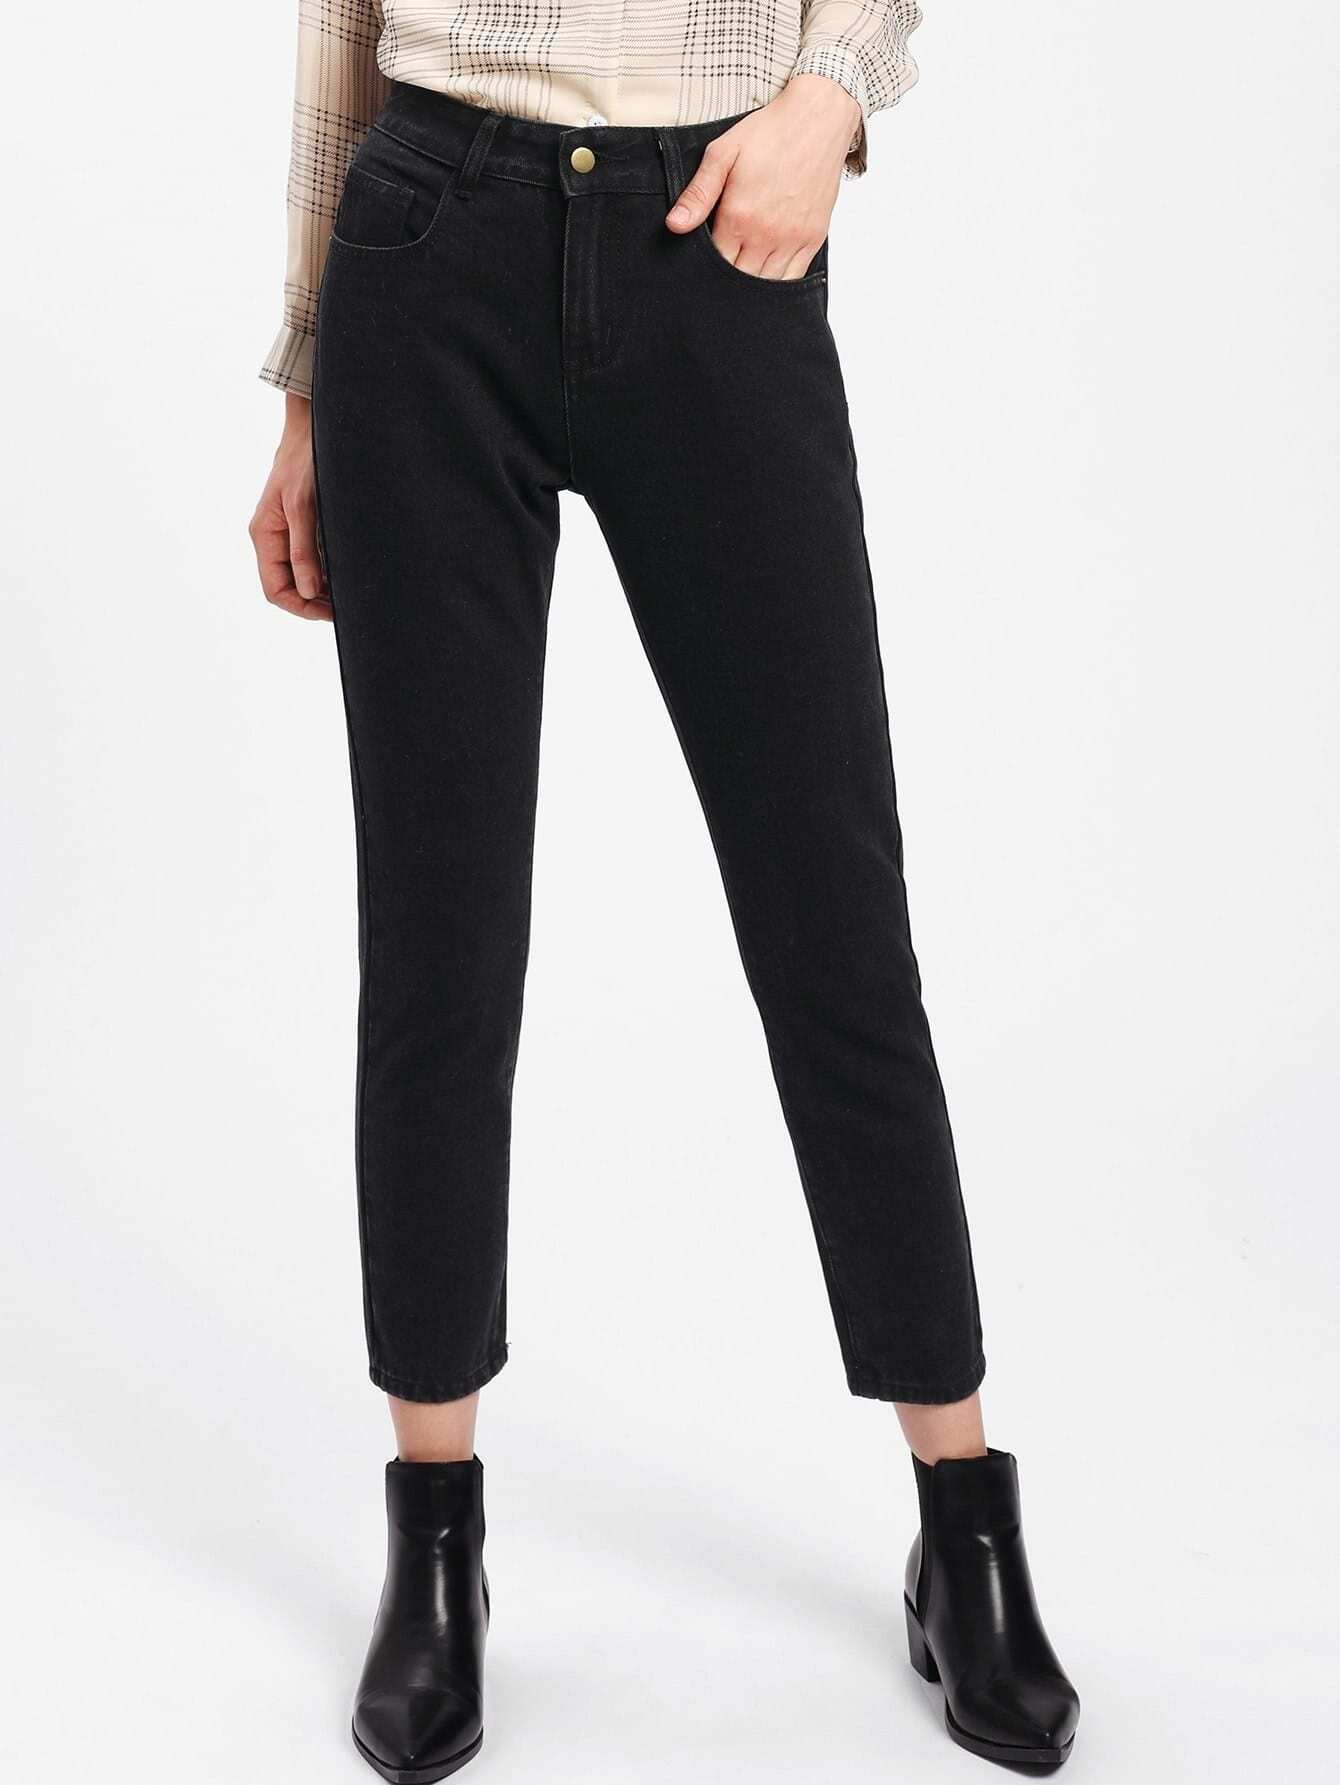 Pocket Patched Crop Jeans patched embroidered jeans